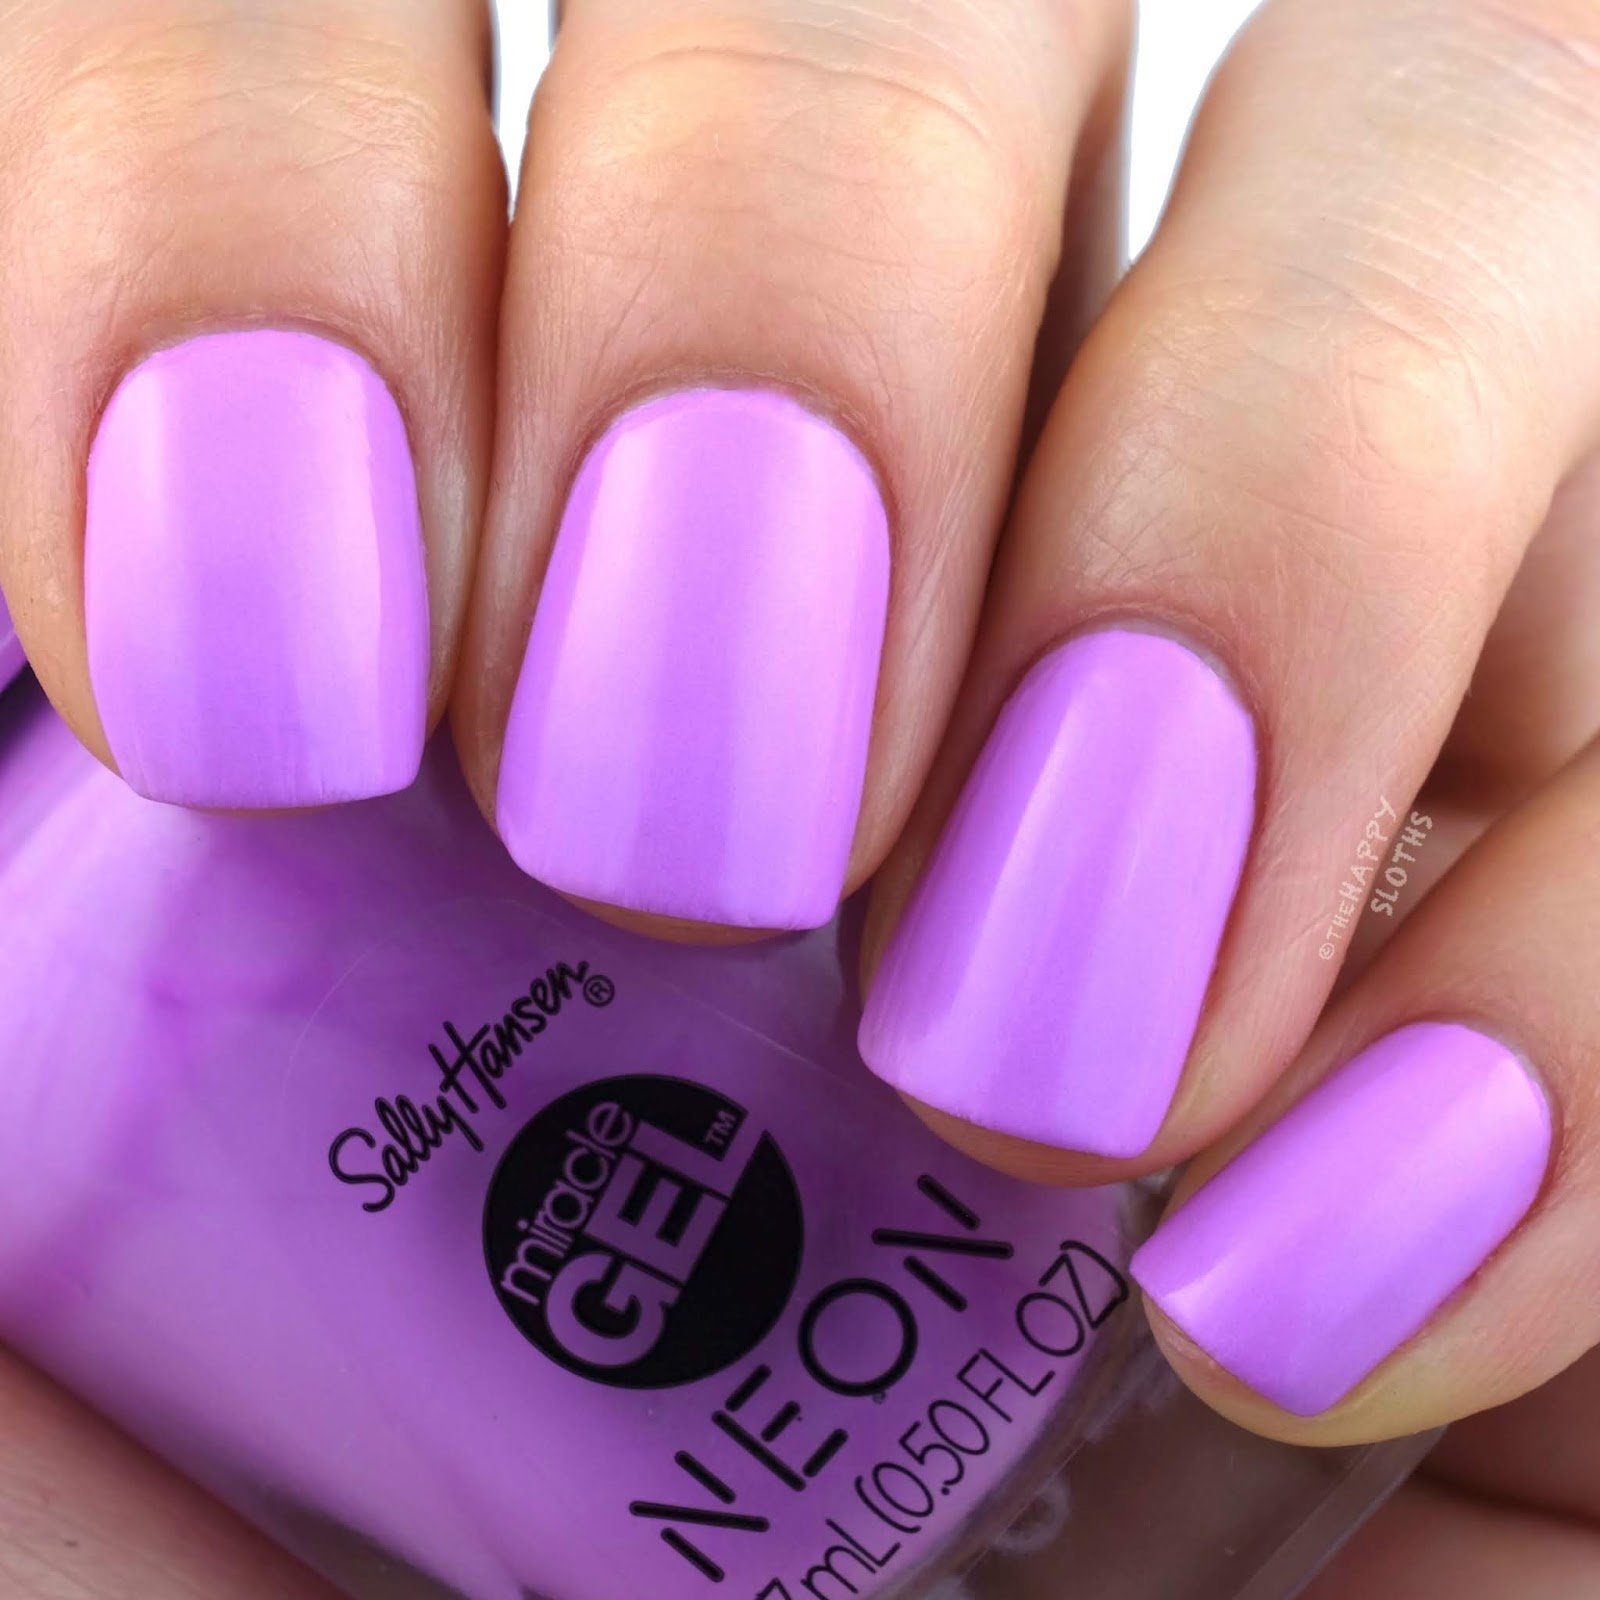 Sally Hansen   Miracle Gel Summer 2019 Neon Collection   Violet Voltage: Review and Swatches